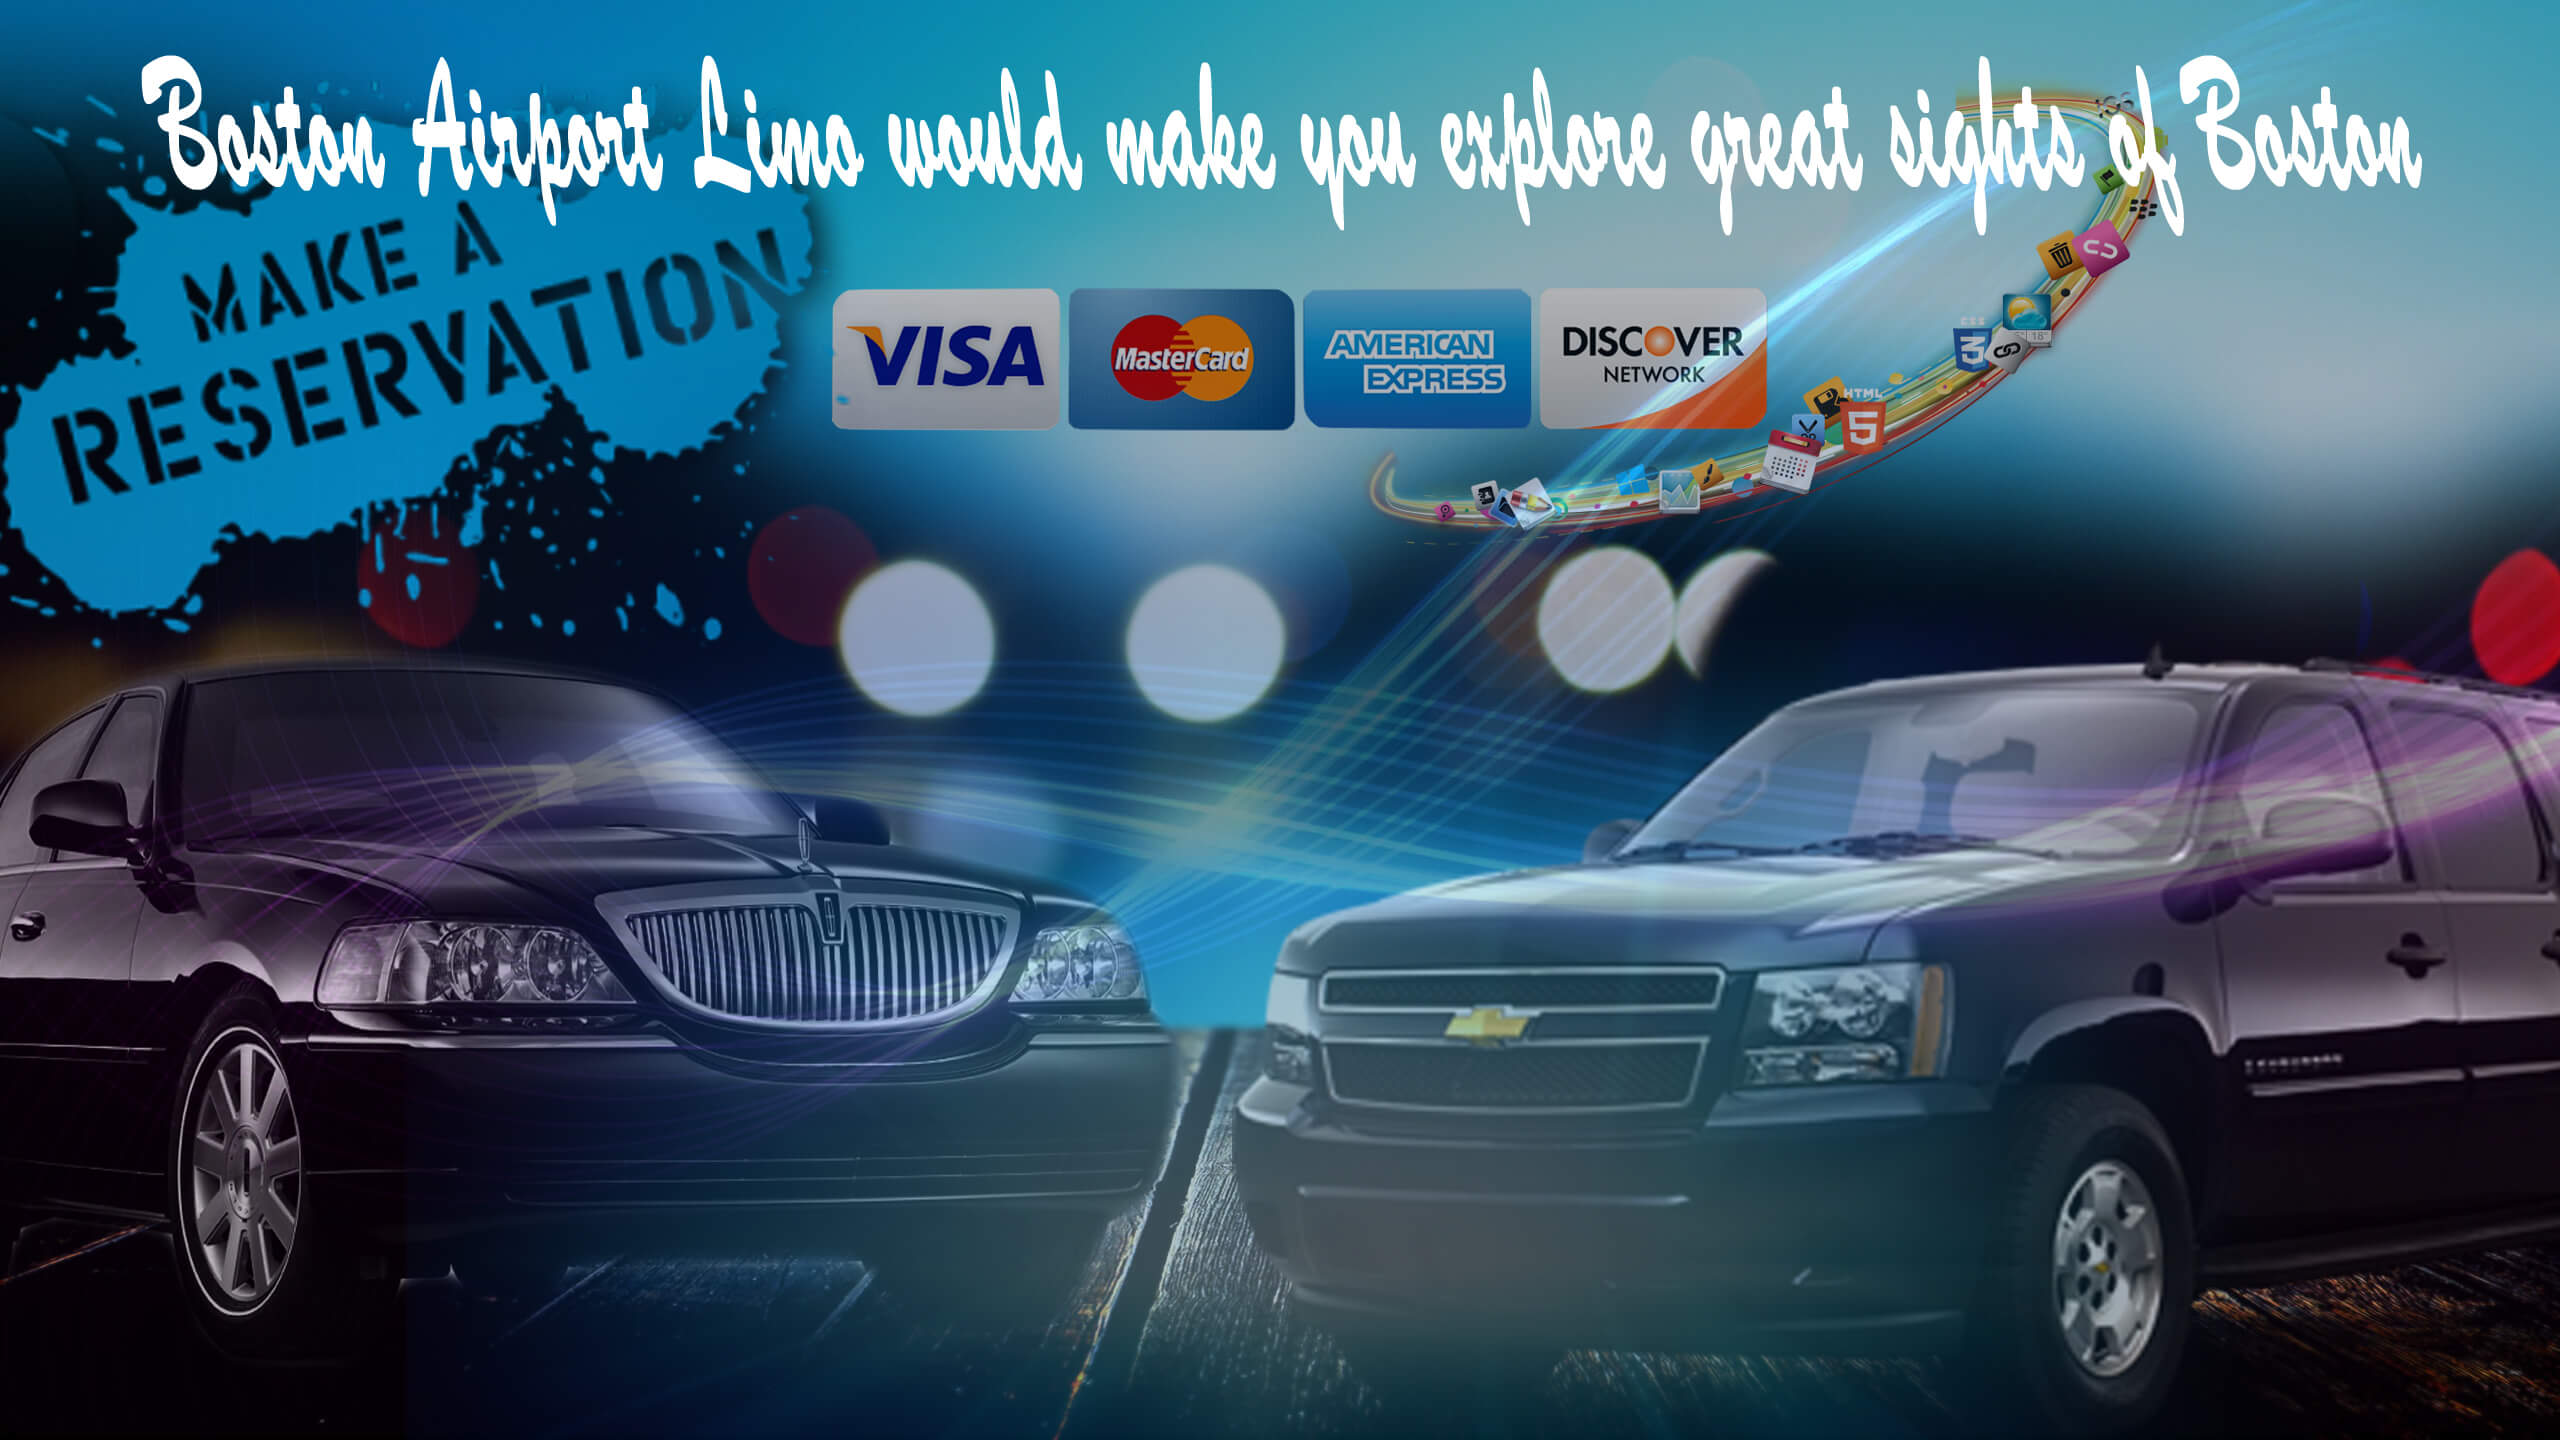 Boston-Airport-Limo-would-make-you-explore-great-sights-to-Boston Boston Airport Limo would make you explore great sights of Boston